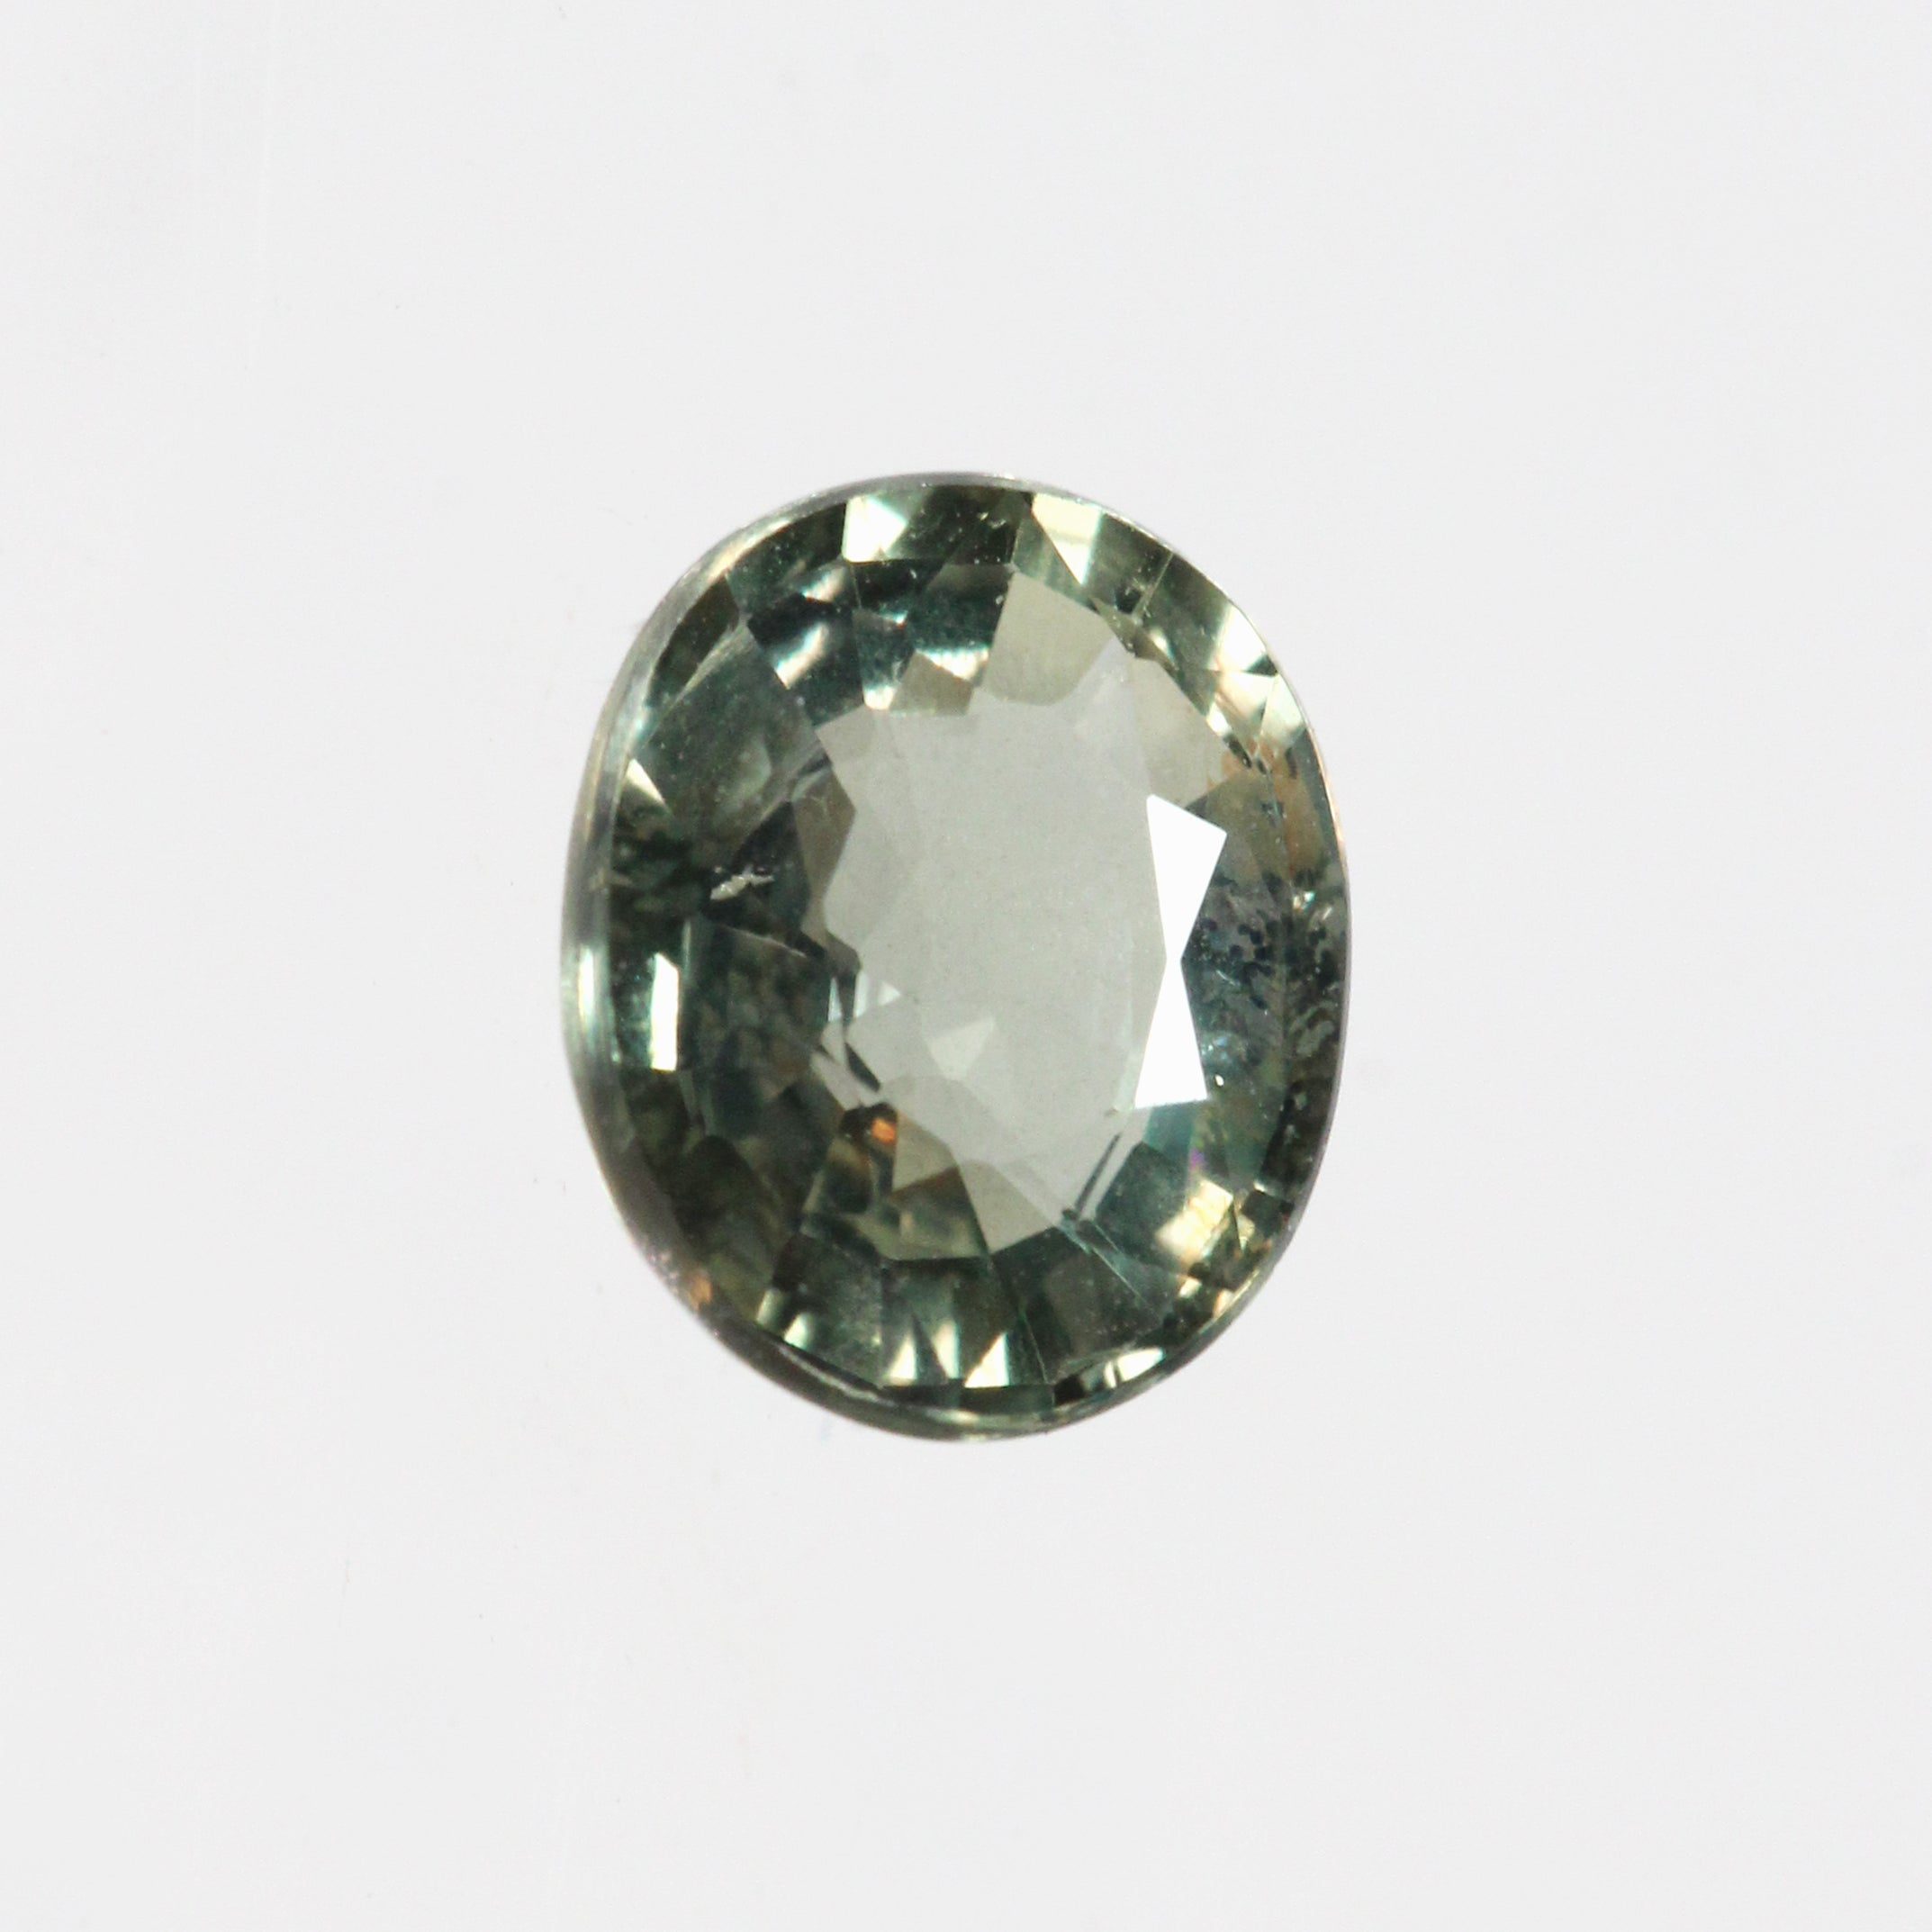 1 ct Oval Olive Green Sapphire for Custom Work - Inventory Code S100